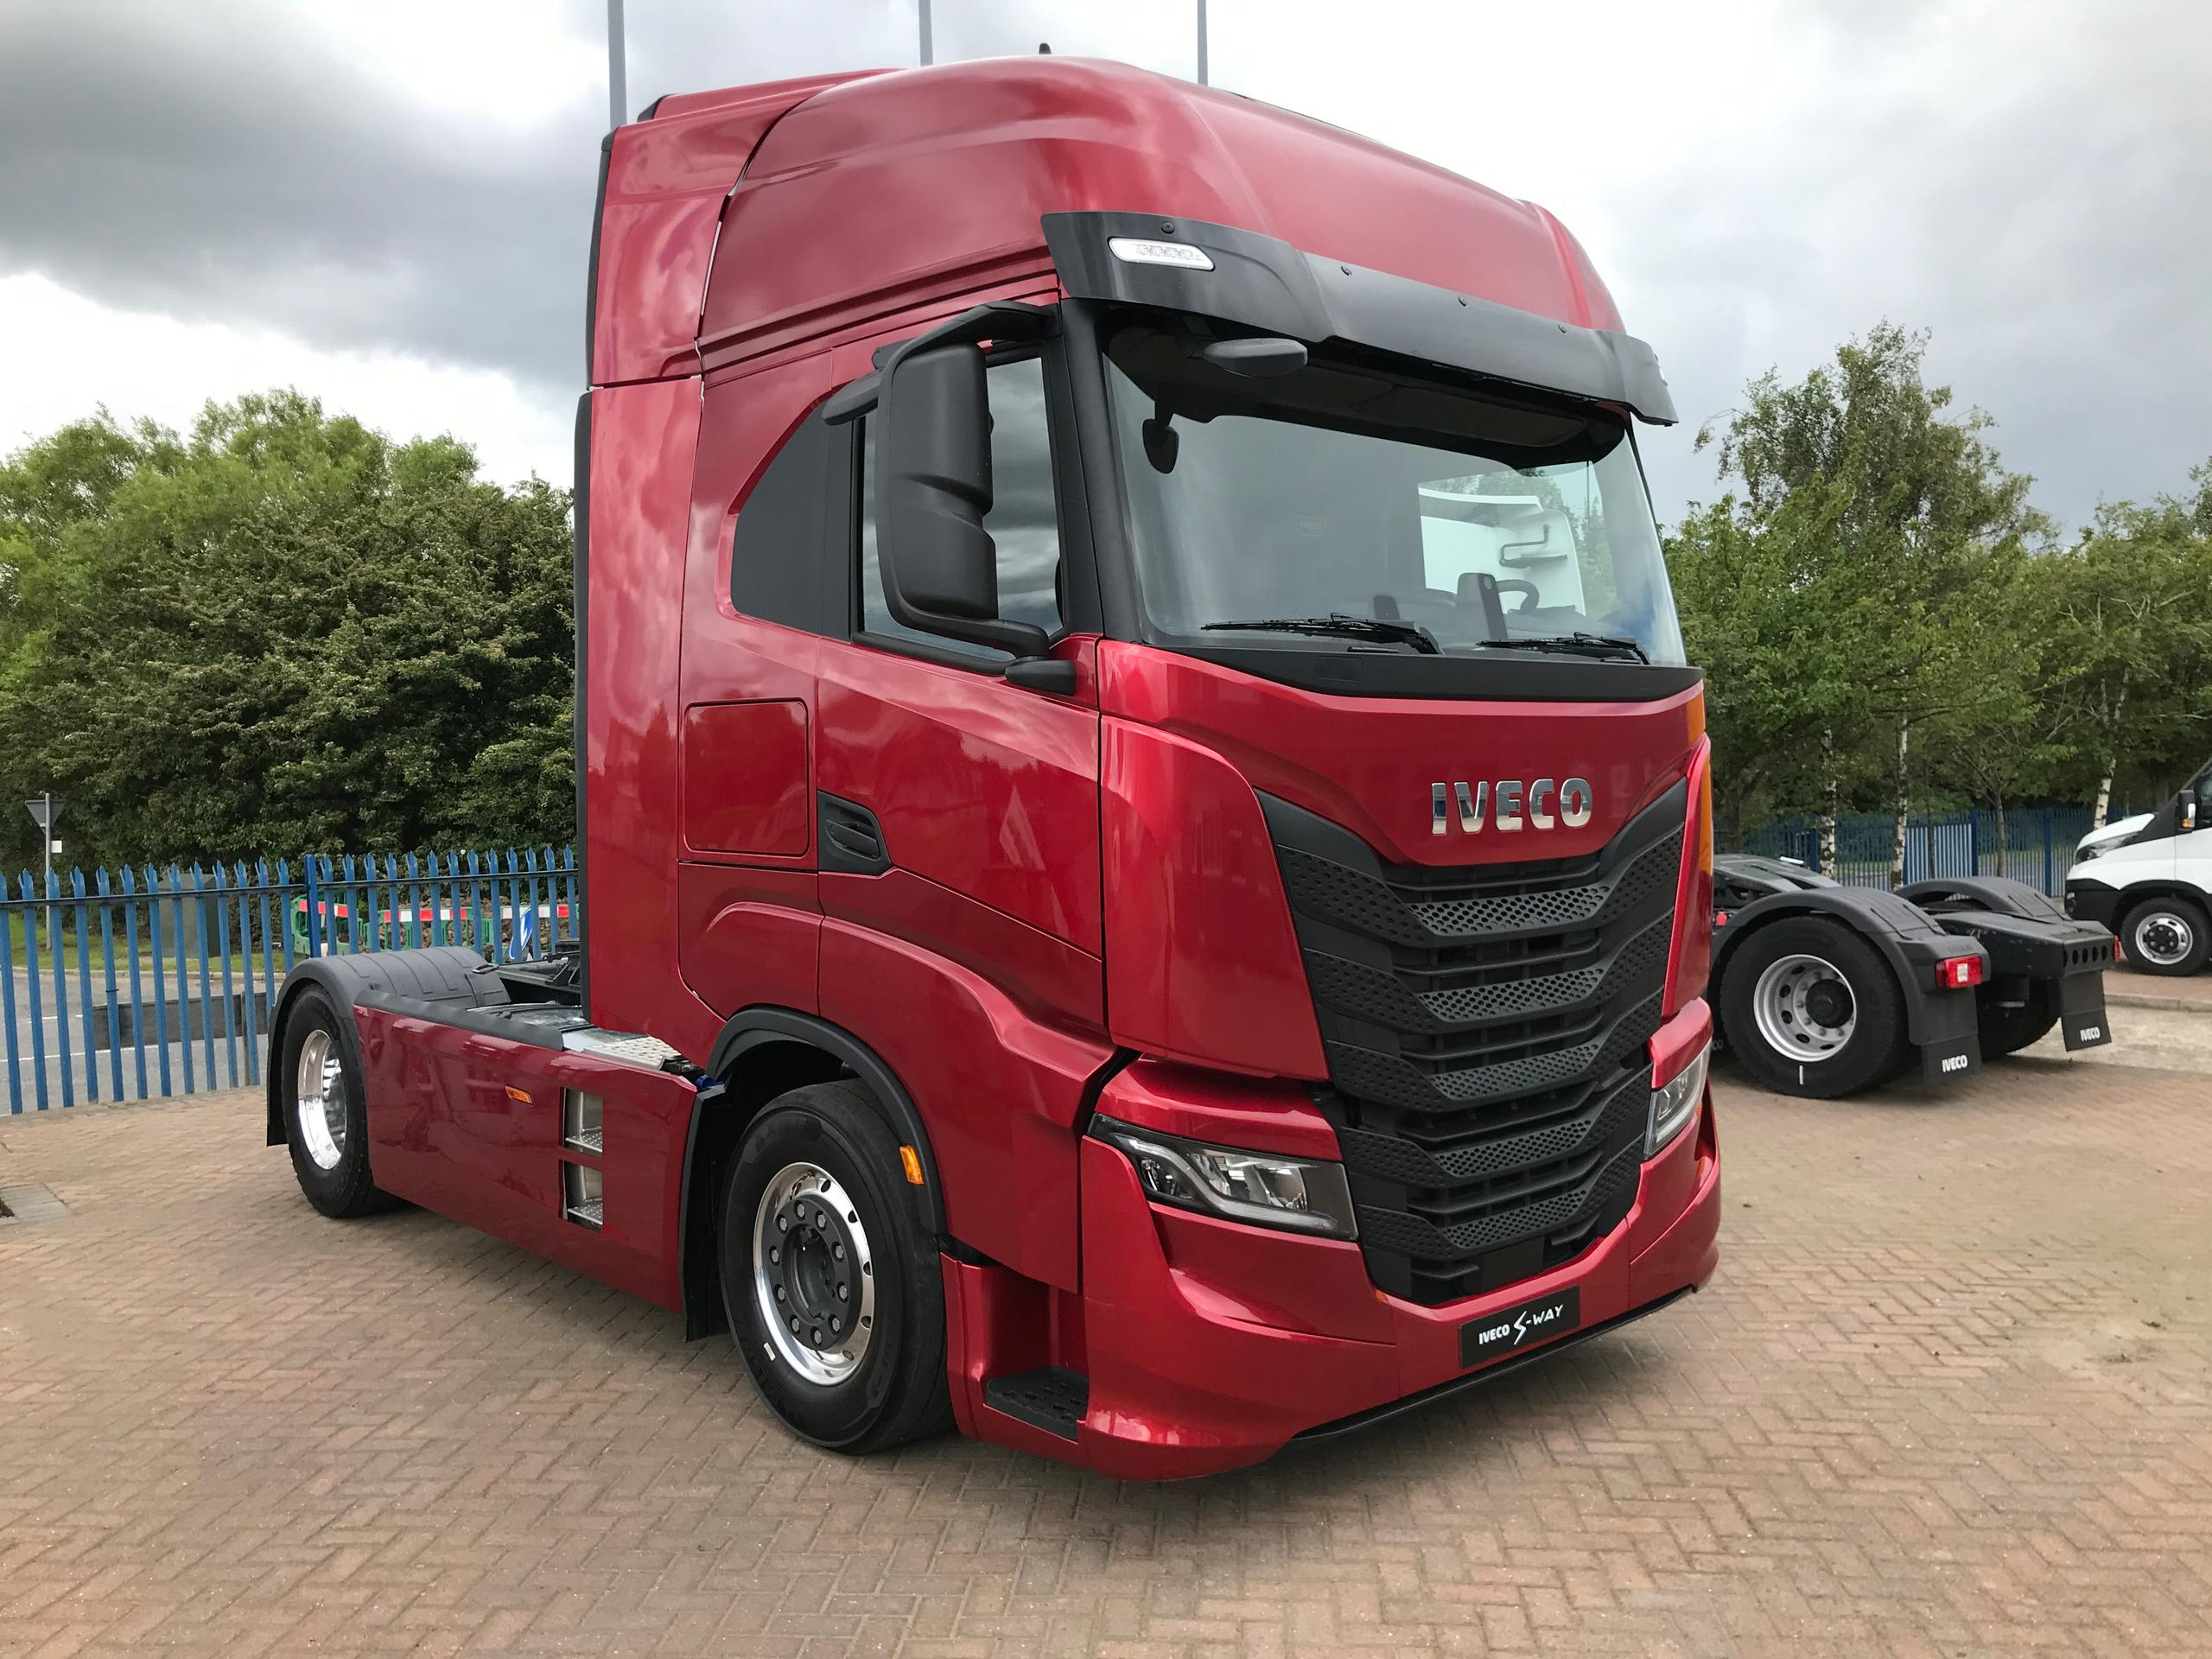 Stunning IVECO S-WAY launched in the UK